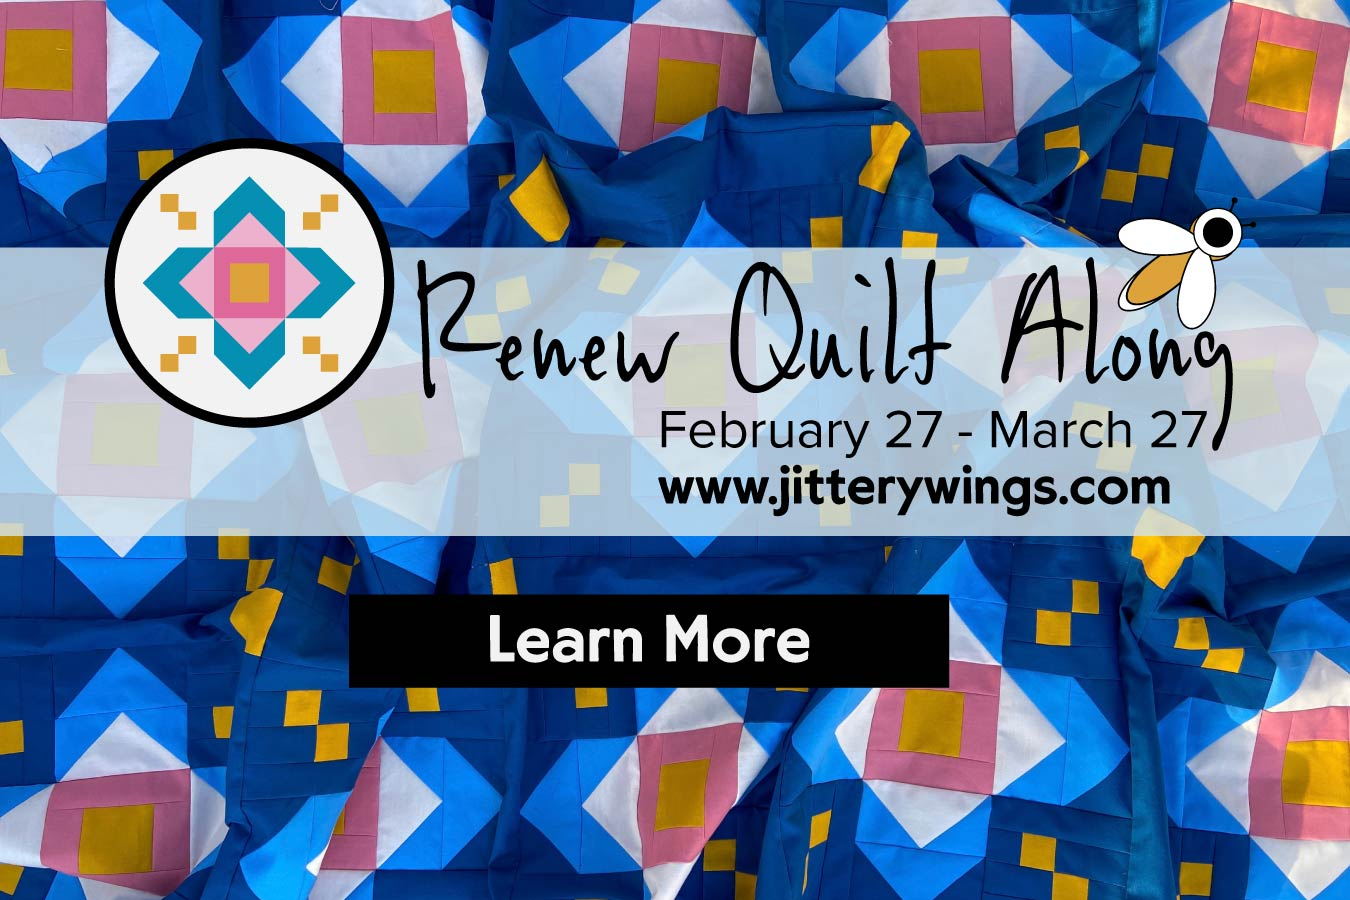 renew quilt along, jittery wings quilt along, sew along, renew sew along, renew quilt pattern, quilt along, mitzie schafer, jittery wings, fabric bundles, shop for fabric online, find other quilters, modern quilt patterns, flying geese quilt patterns, flying geese size chart,